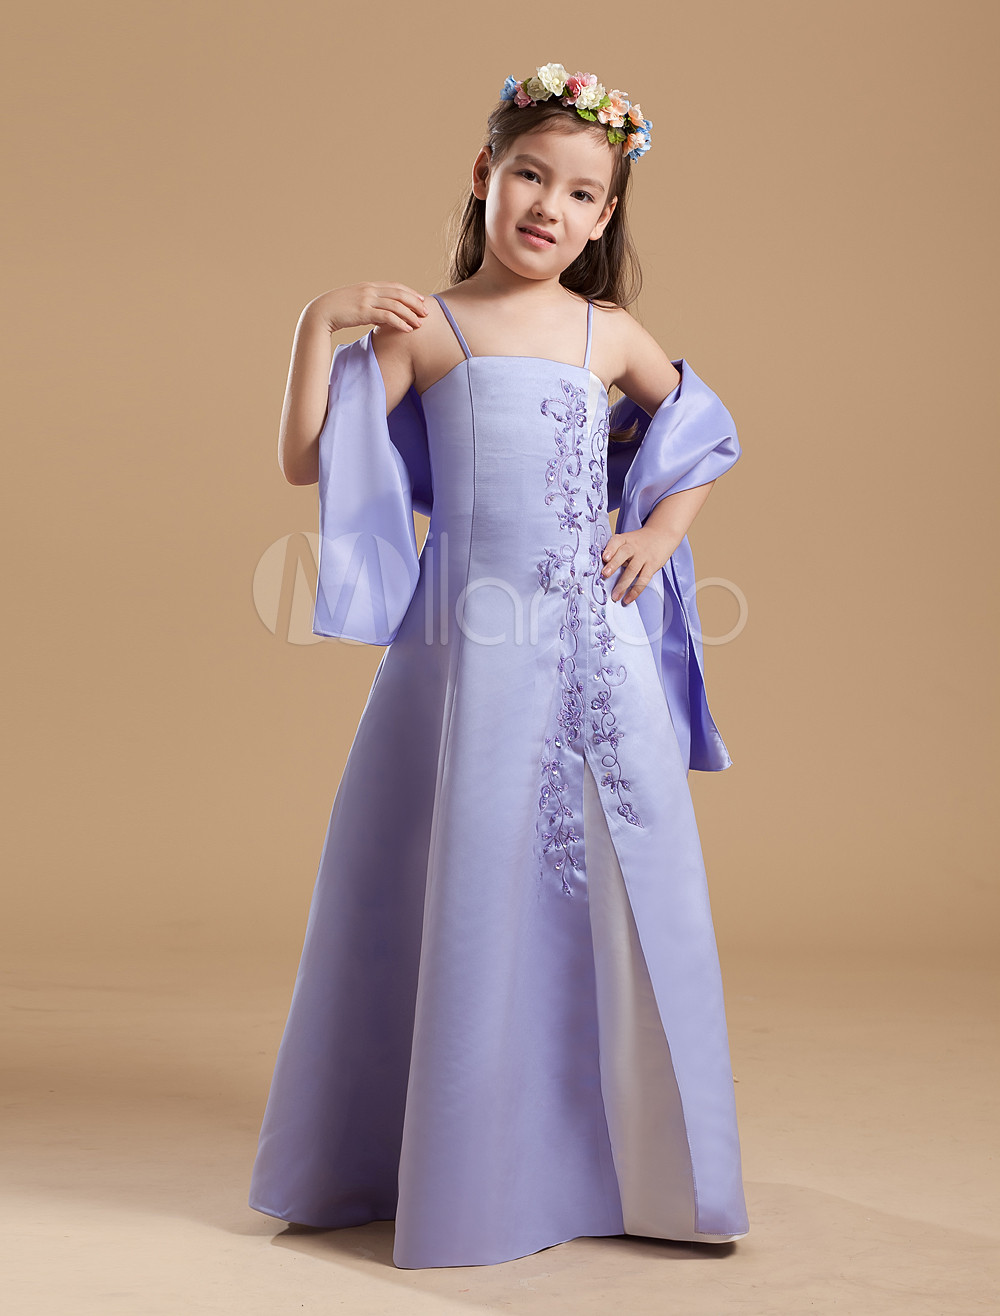 Flower Girl Dress A line Violet Satin Applique Spaghetti Straps Toddler's Dinner Dress With Shawl